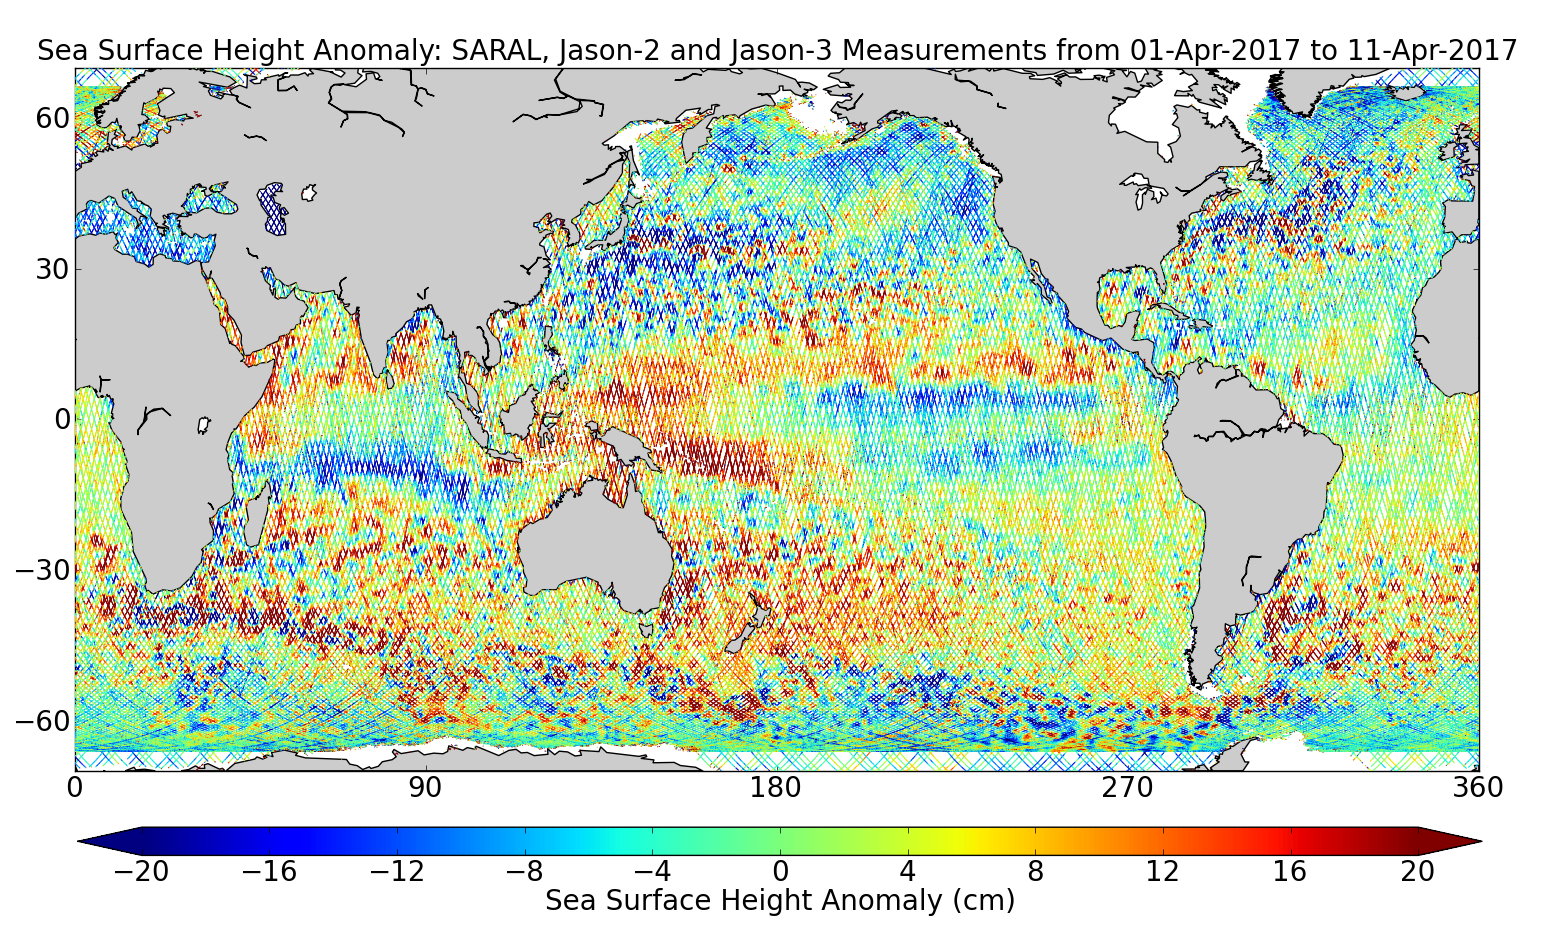 Sea Surface Height Anomaly: SARAL, Jason-2 and Jason-3 Measurements from 01-Apr-2017 to 11-Apr-2017